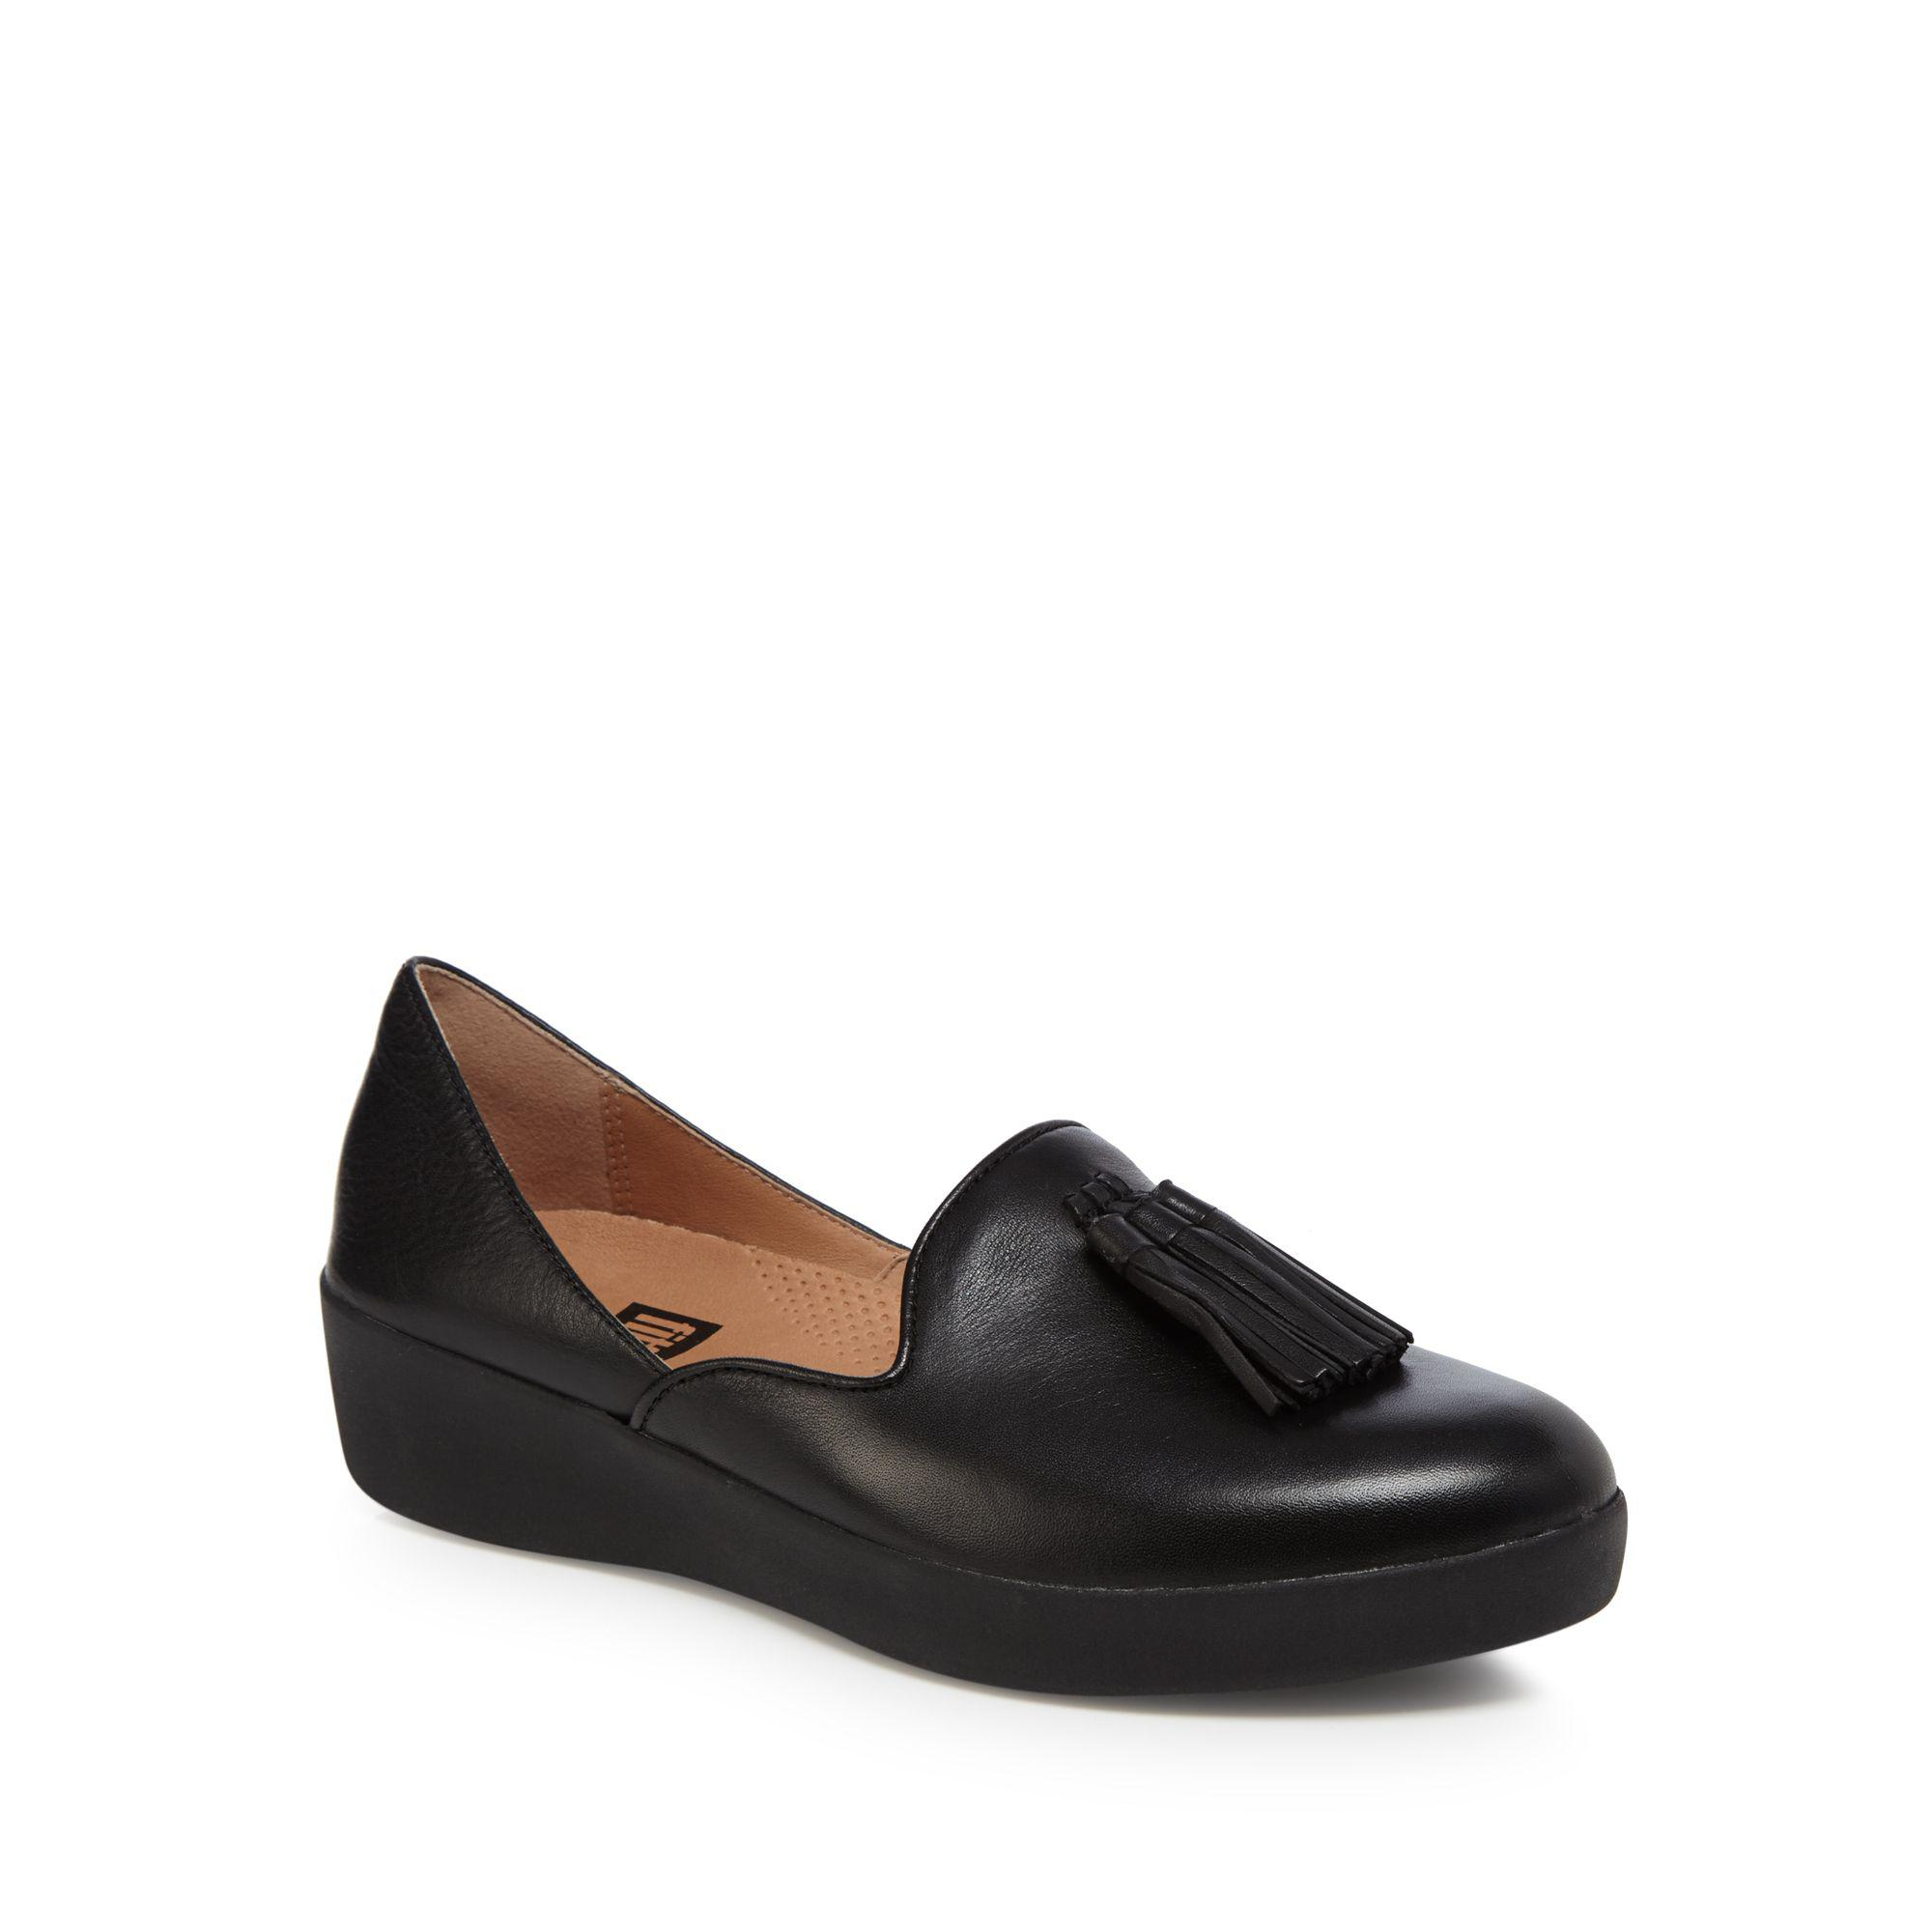 clearance in China Black leather 'Superskate D'orsay' mid flatform heel loafers brand new unisex cheap price hot sale for sale cheap sale top quality cheap sale best prices H3LhNMQ4J